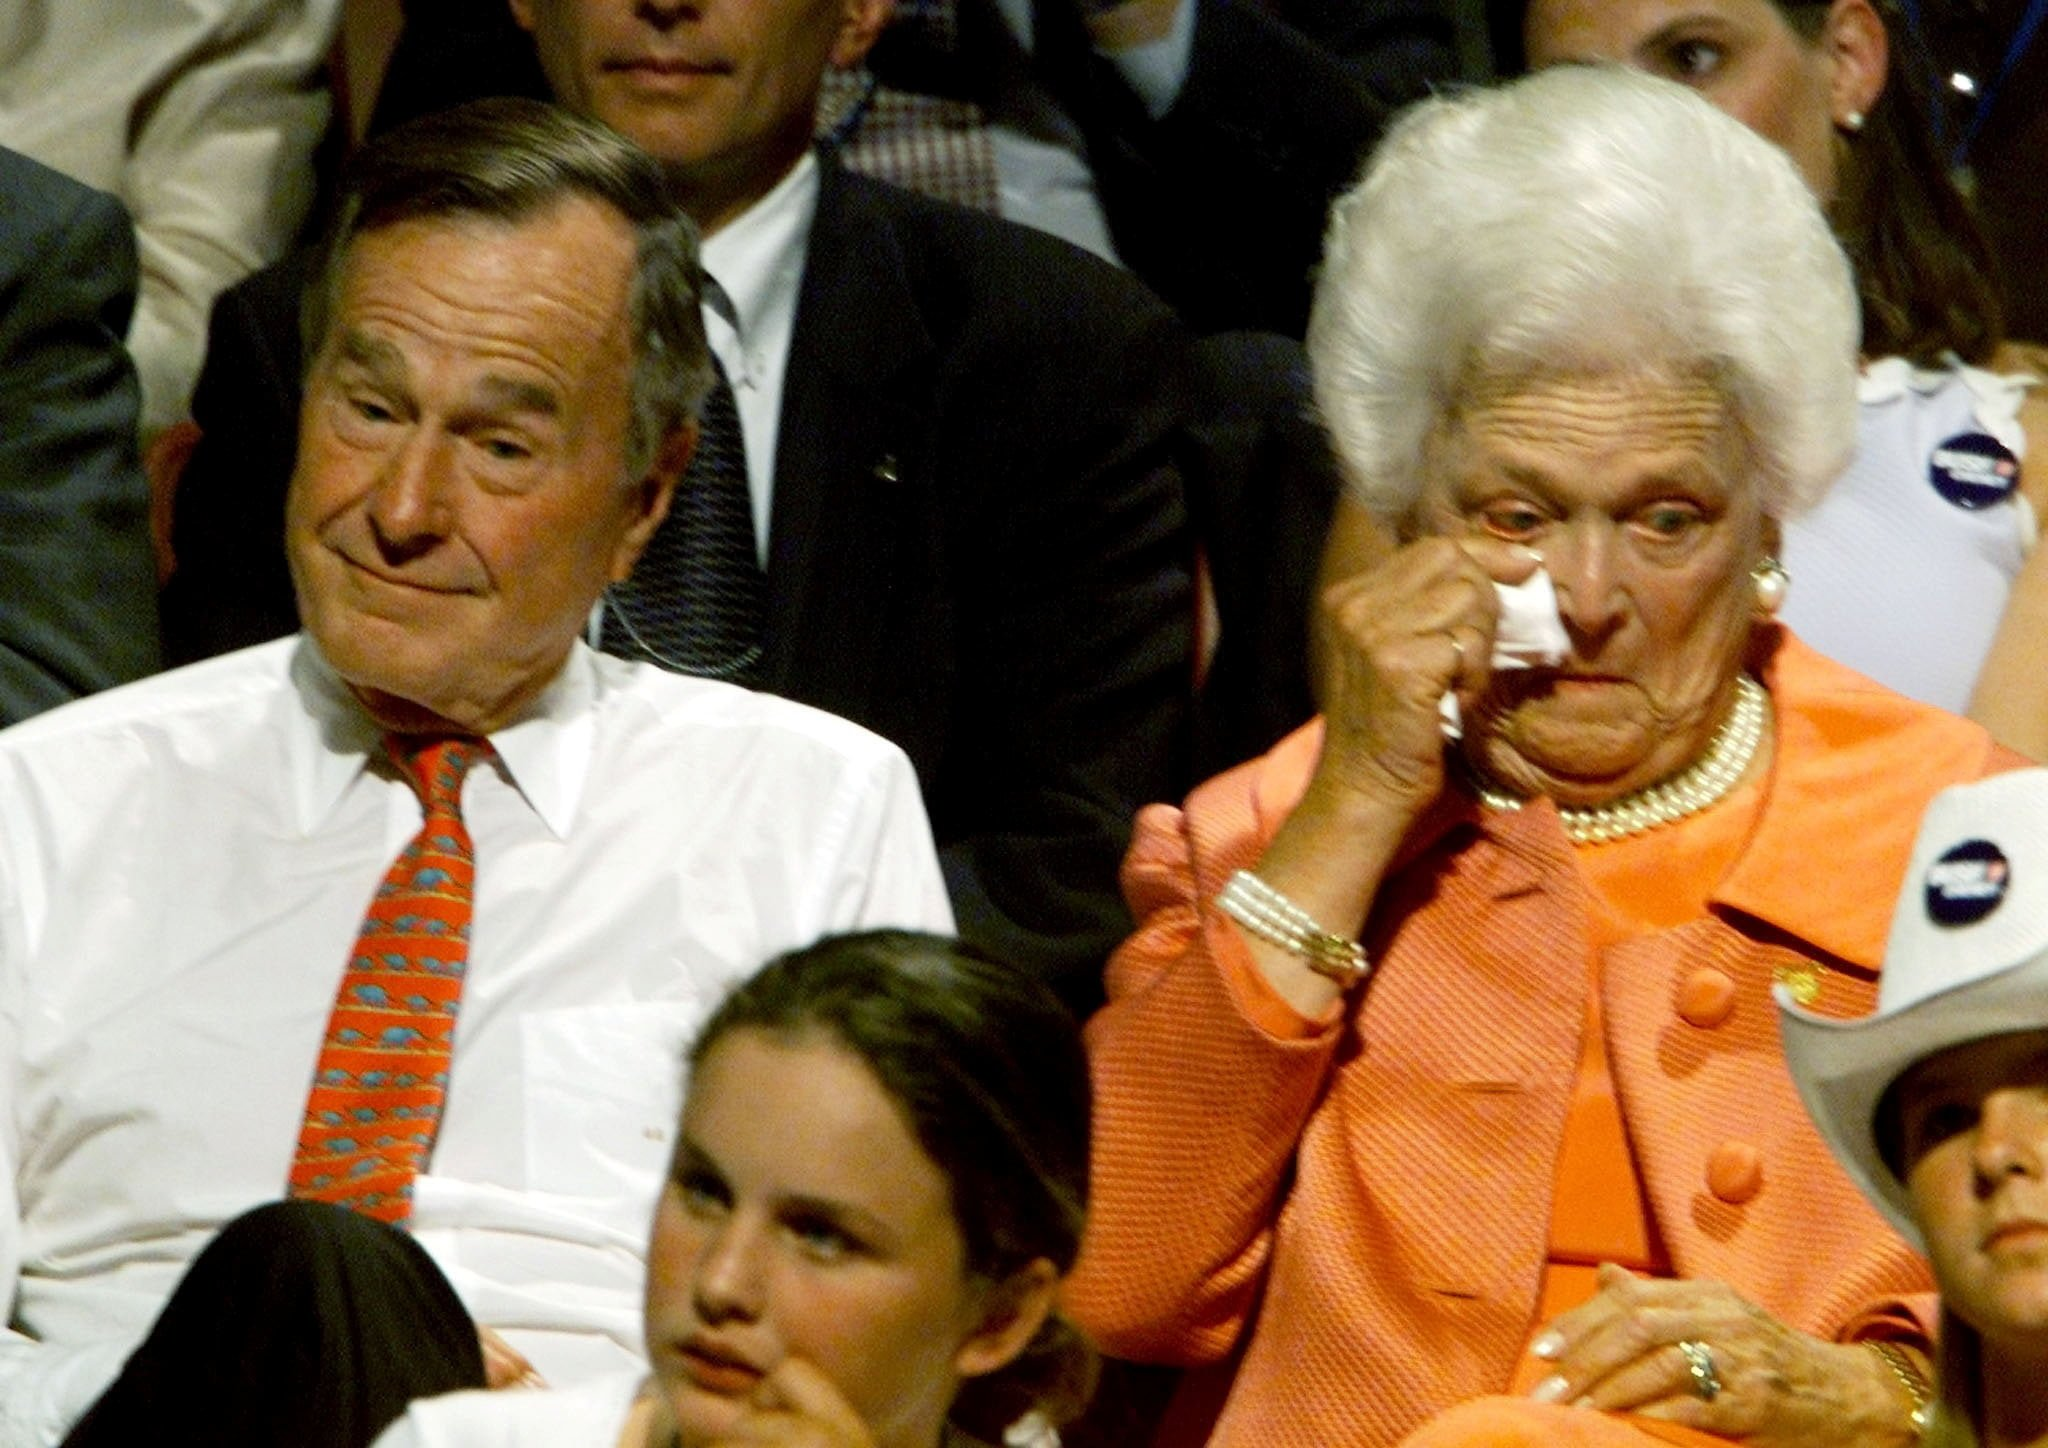 FILE PHOTO: The parents of Texas Gov. George W. Bush, former President George Bush and his wife Barbara, react as their son come out on stage to accept the presidential nomination of the Republican party in Philadelphia